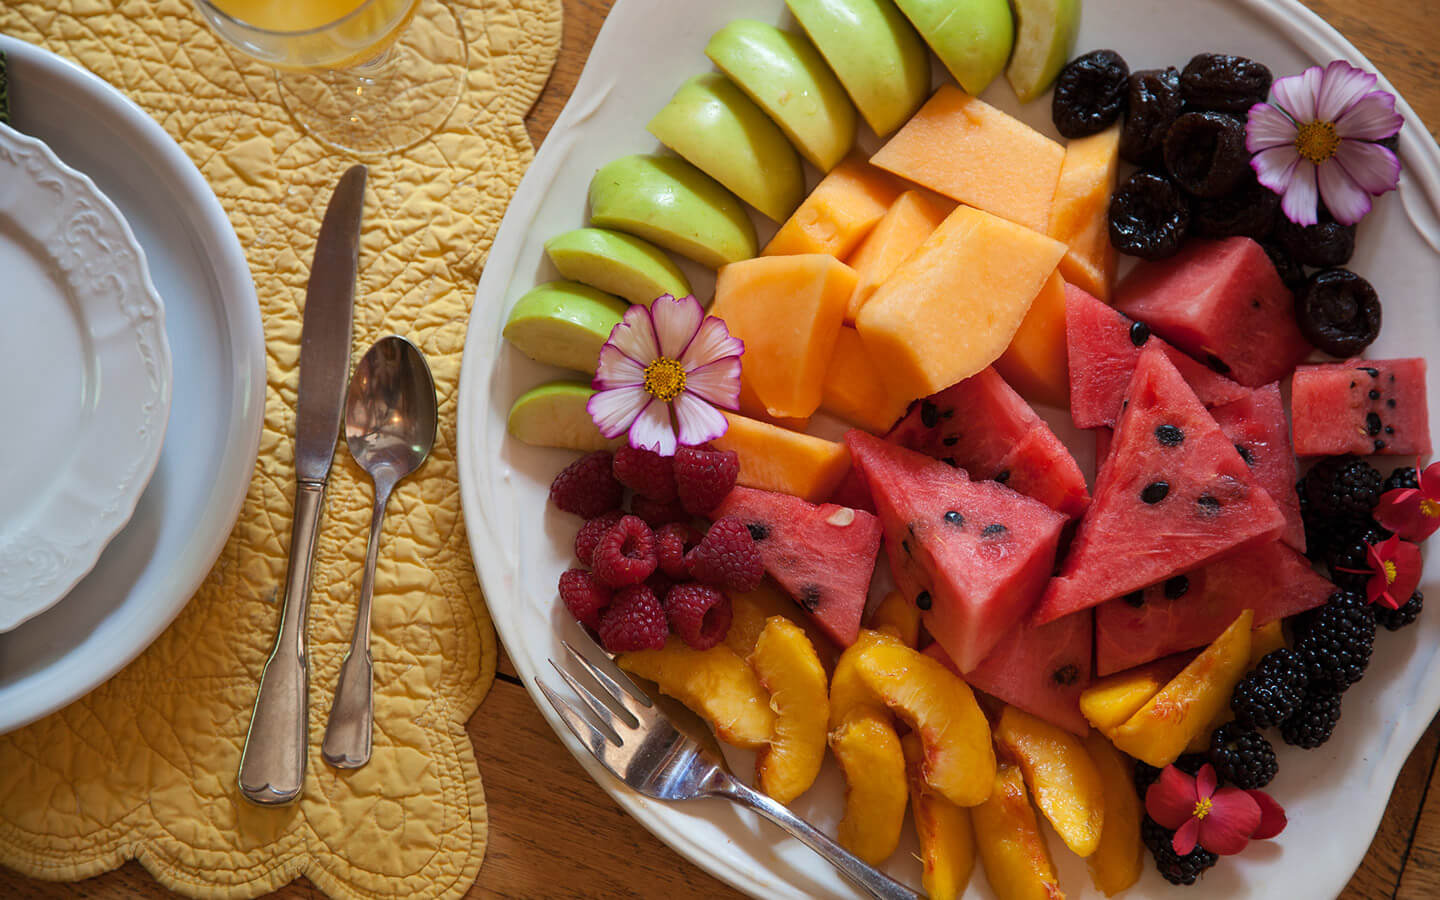 Plate of fruit for breakfast at our Amish Country bed and breakfast